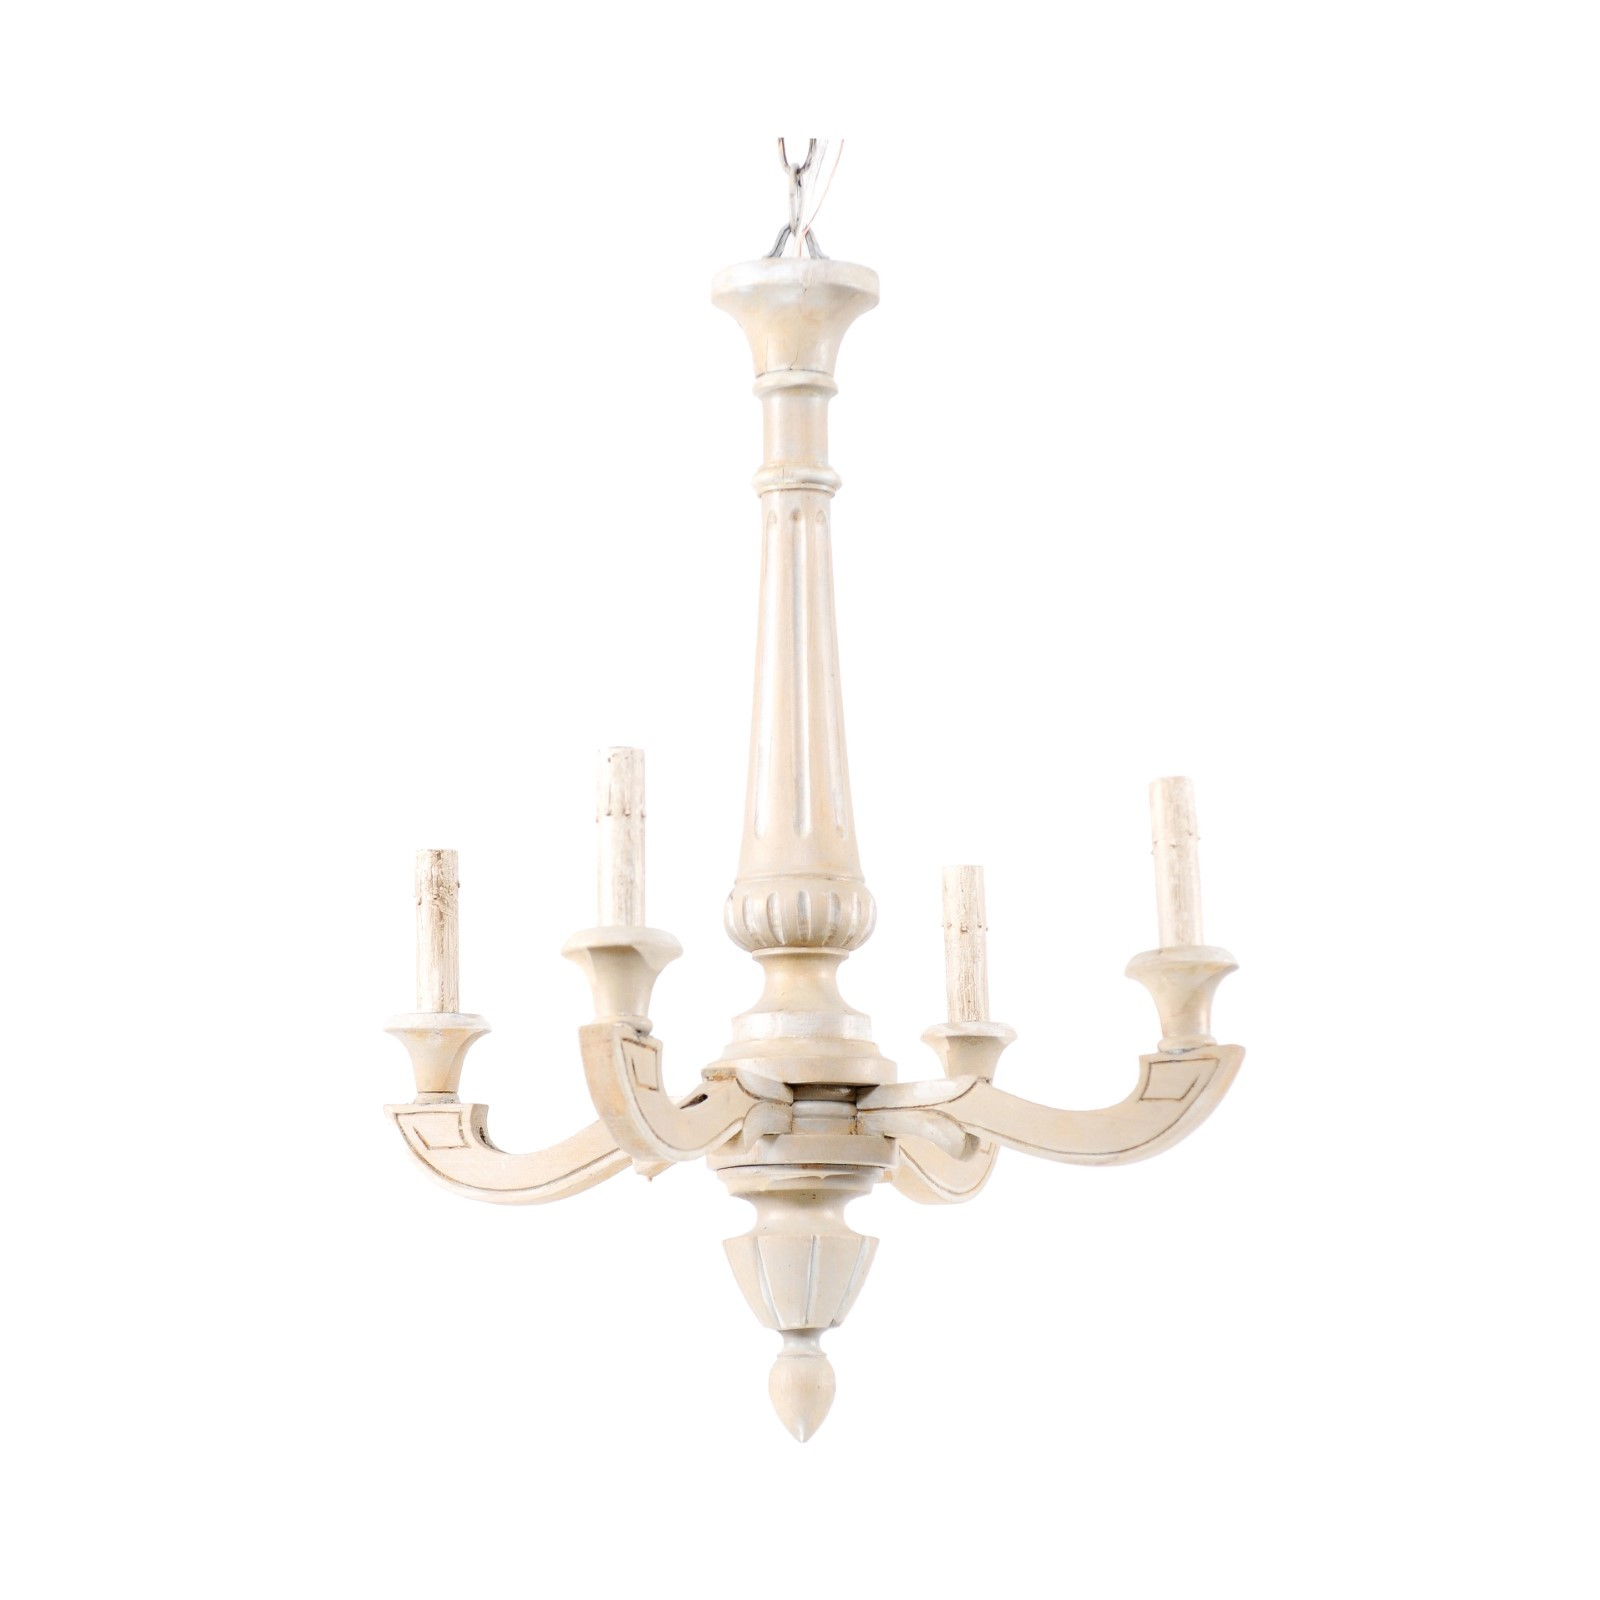 French Fluted-Column Chandelier, Pale Grey